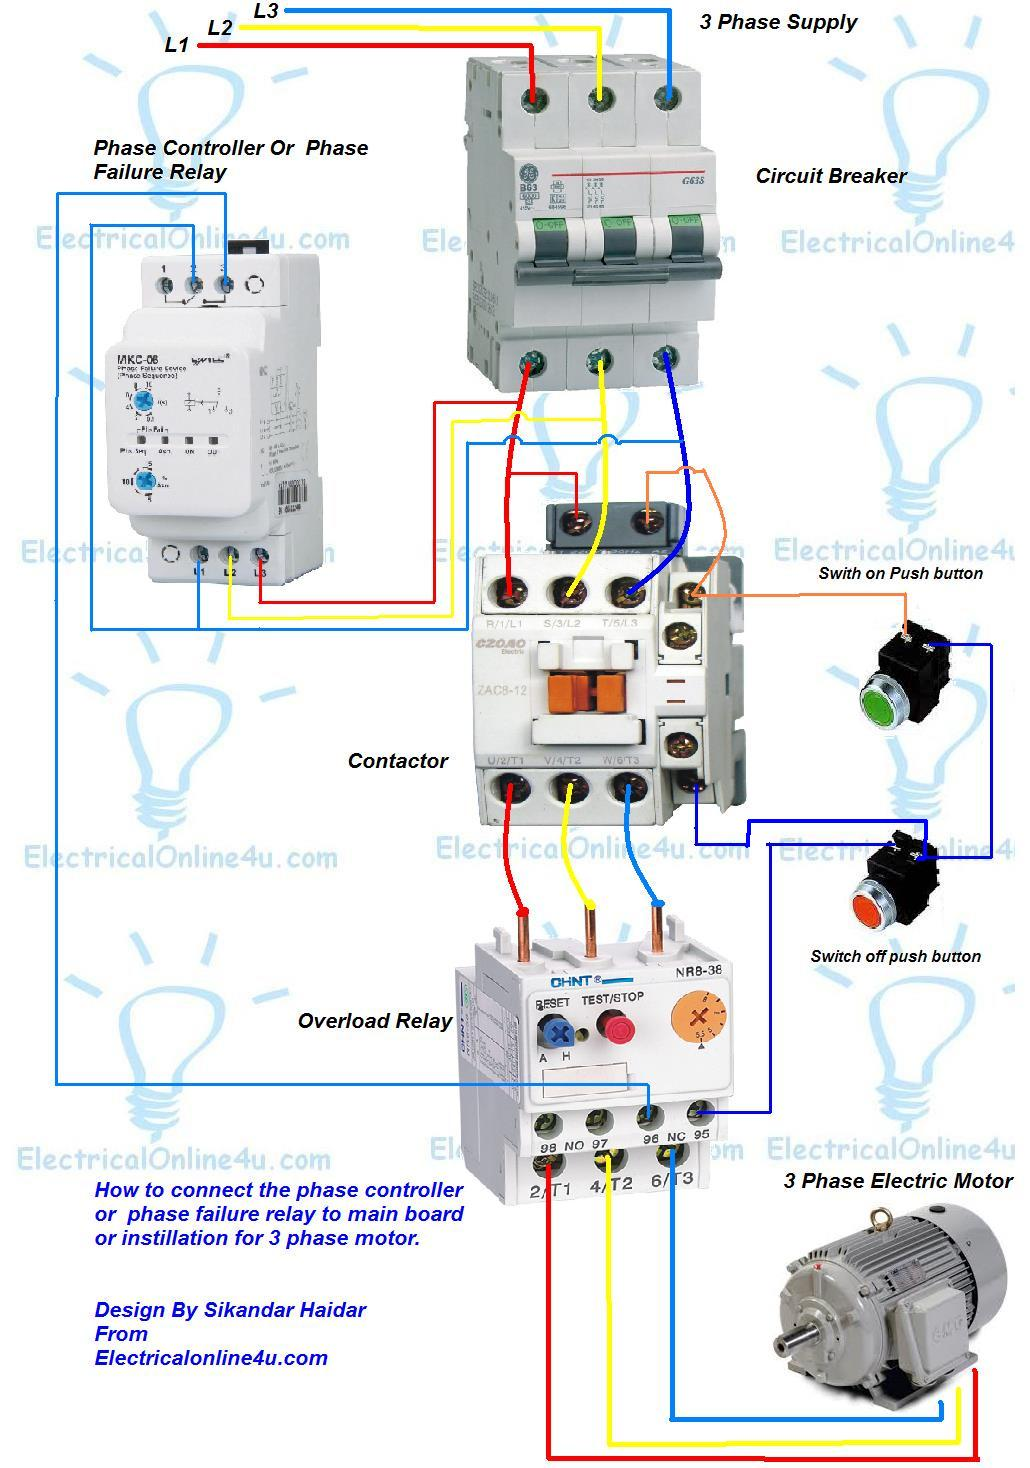 Phase%2Bfailure%2Brelay%2B %2Bphase%2Bcontroller%2Binstilaion%2Bin%2B3%2Bphase%2BMain%2Bboard%2Bor%2Bfor%2B3%2Bphase%2Bmotor phase controller wiring phase failure relay diagram electrical 3 phase electrical wiring diagram at gsmx.co